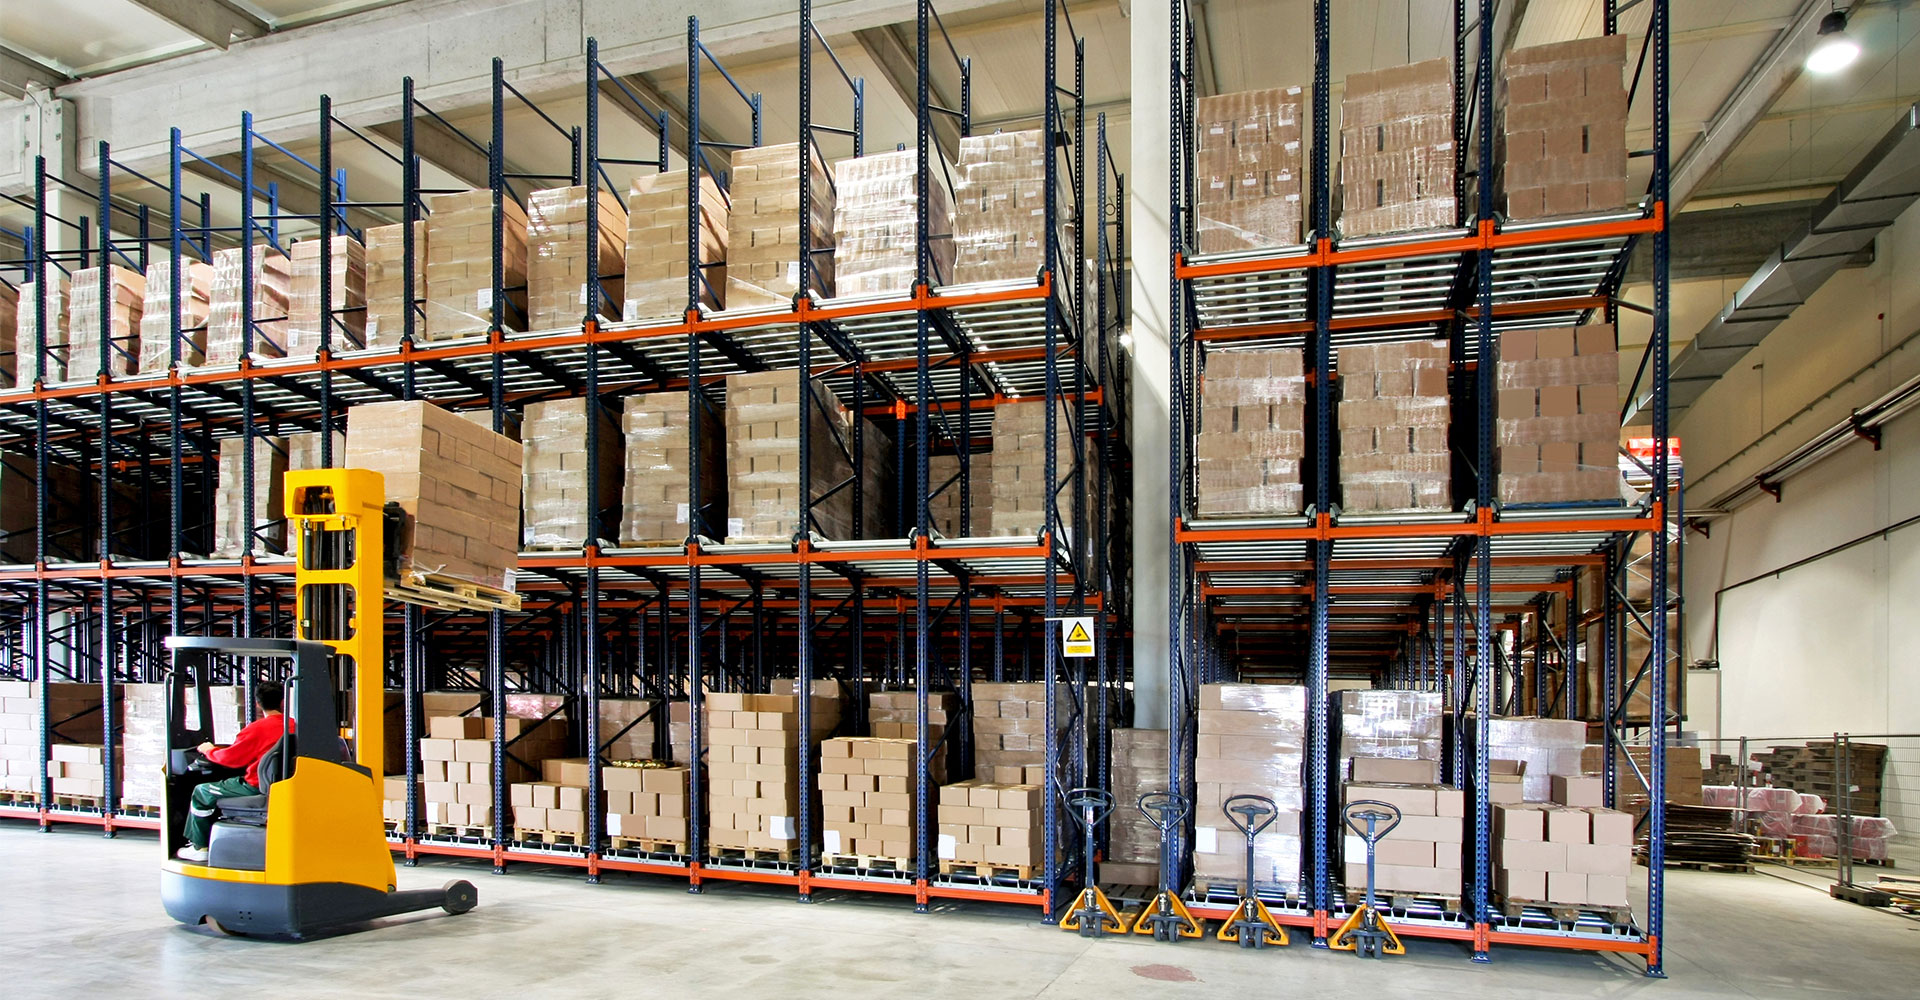 Warehouse Lighting And Work Safety Gtv